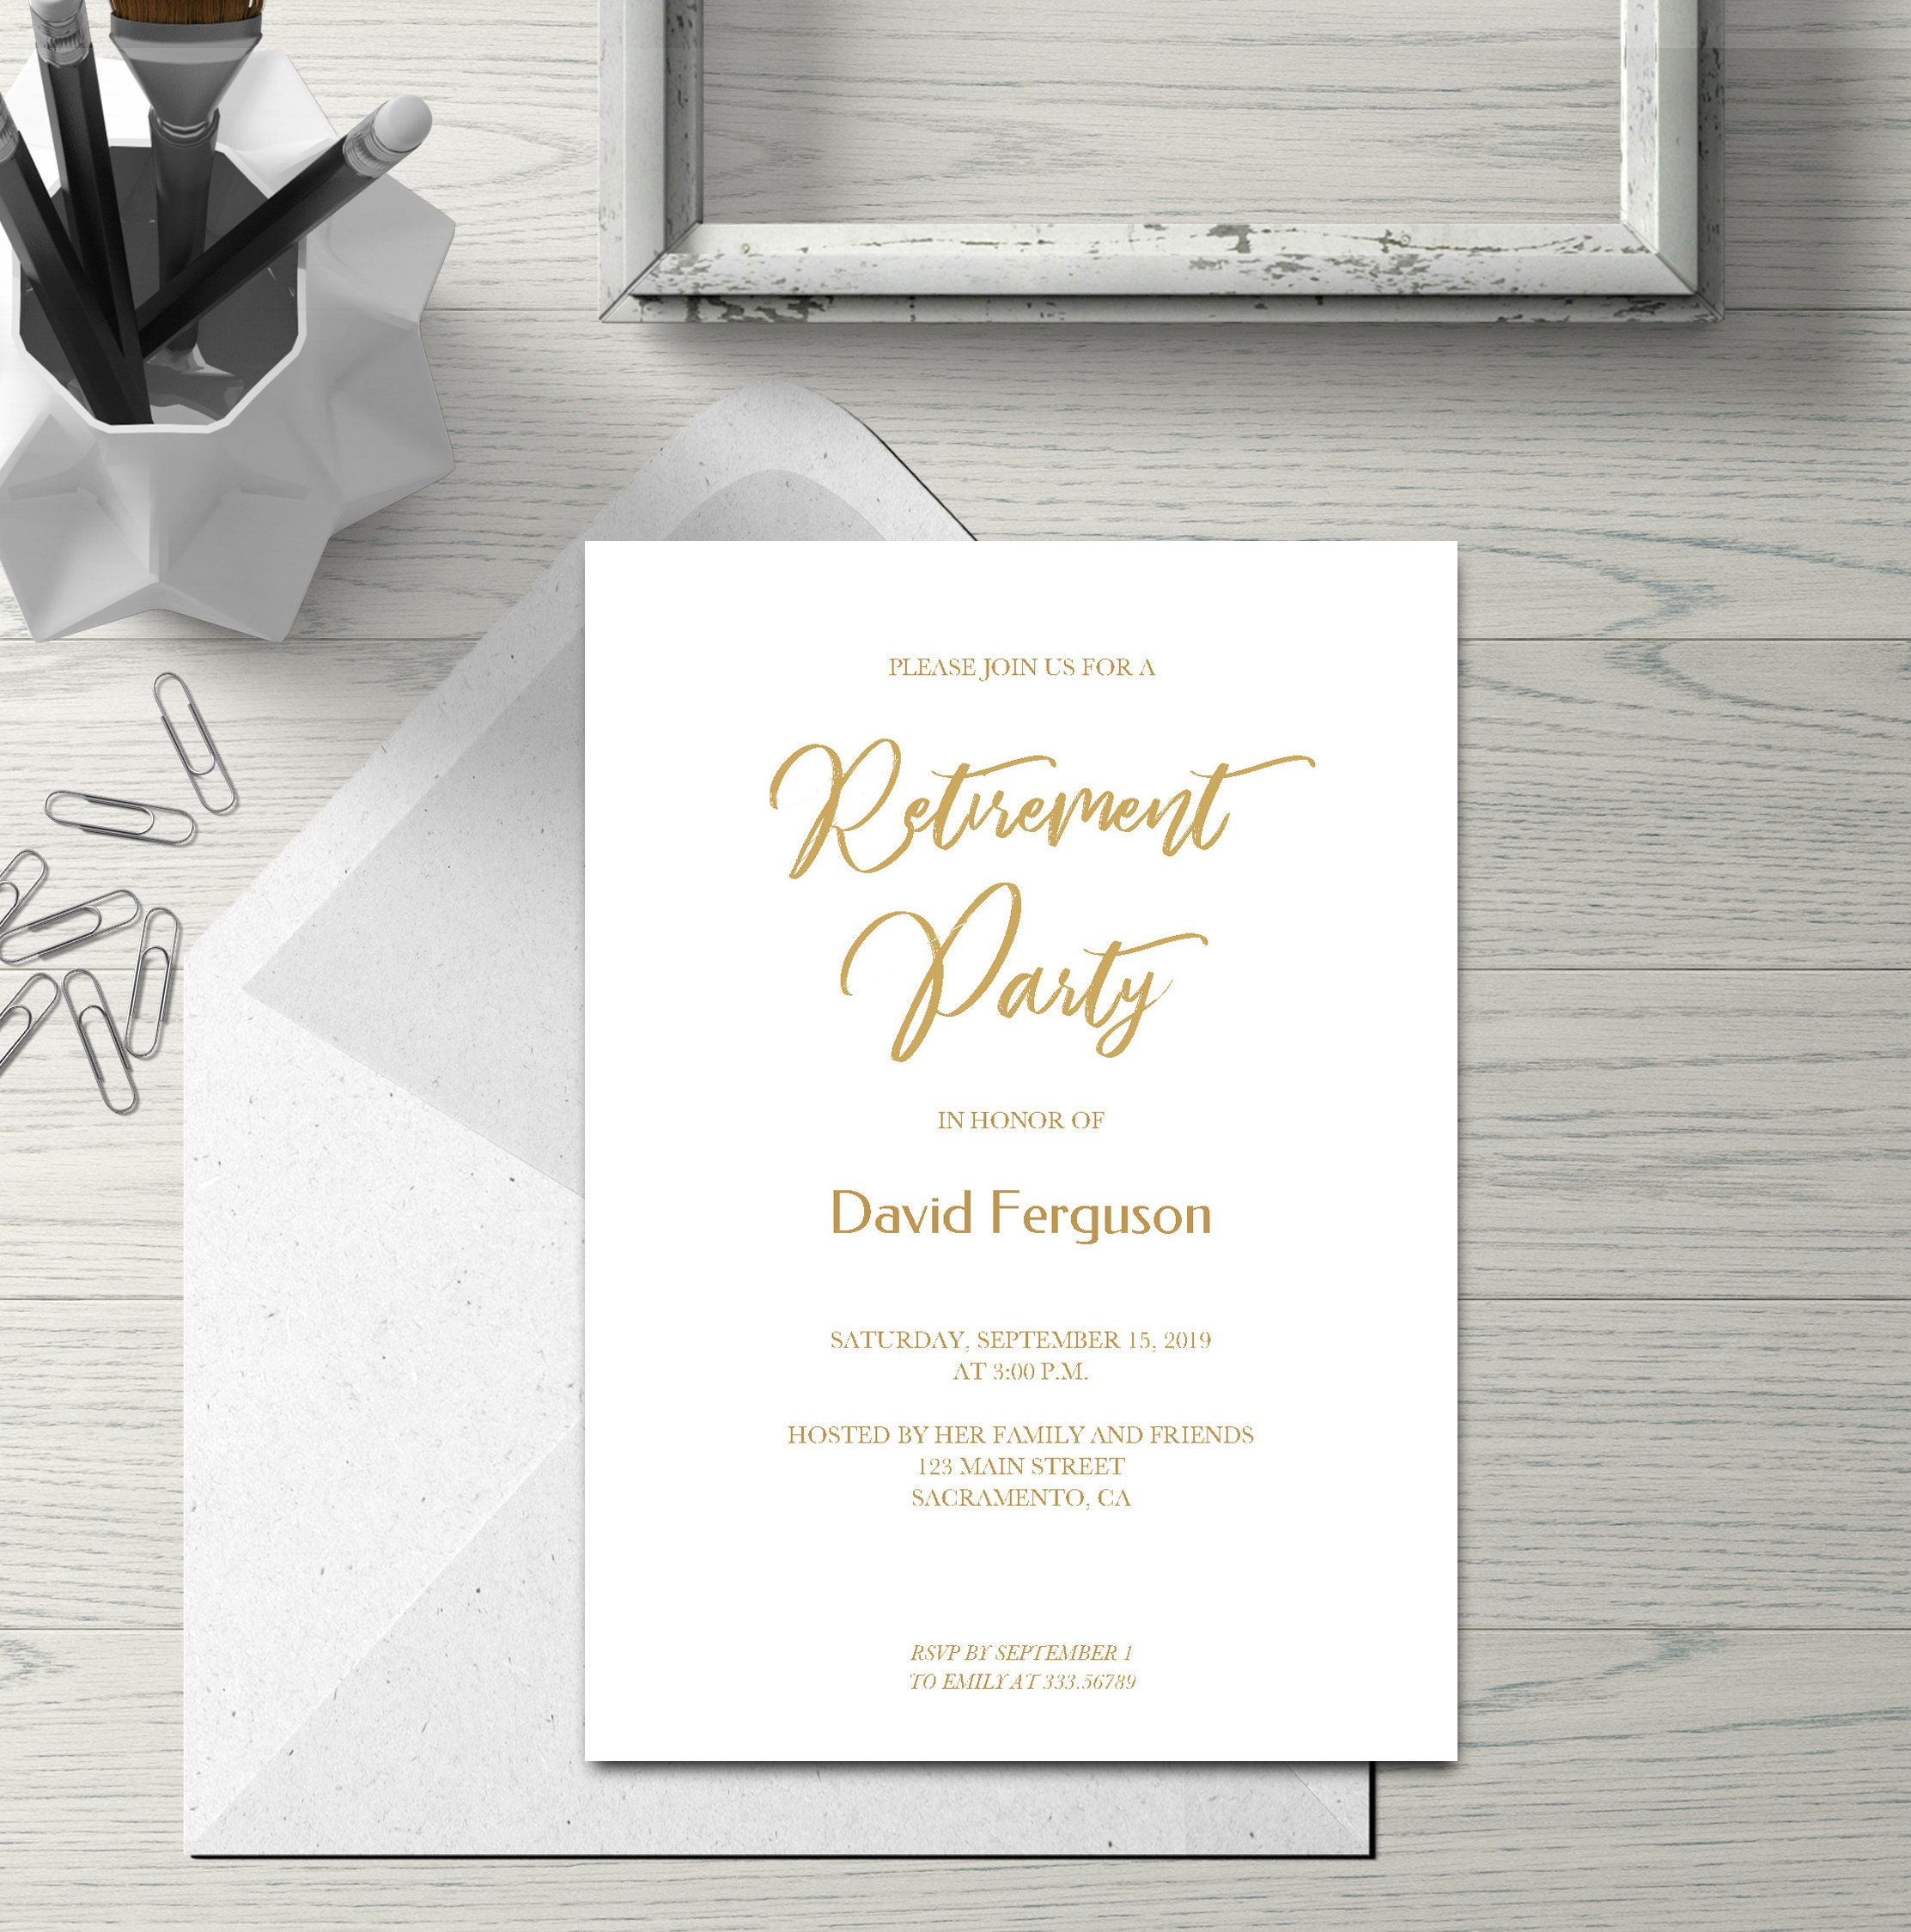 Retirement Party Invitation Card In Gold Simple Calligraphy